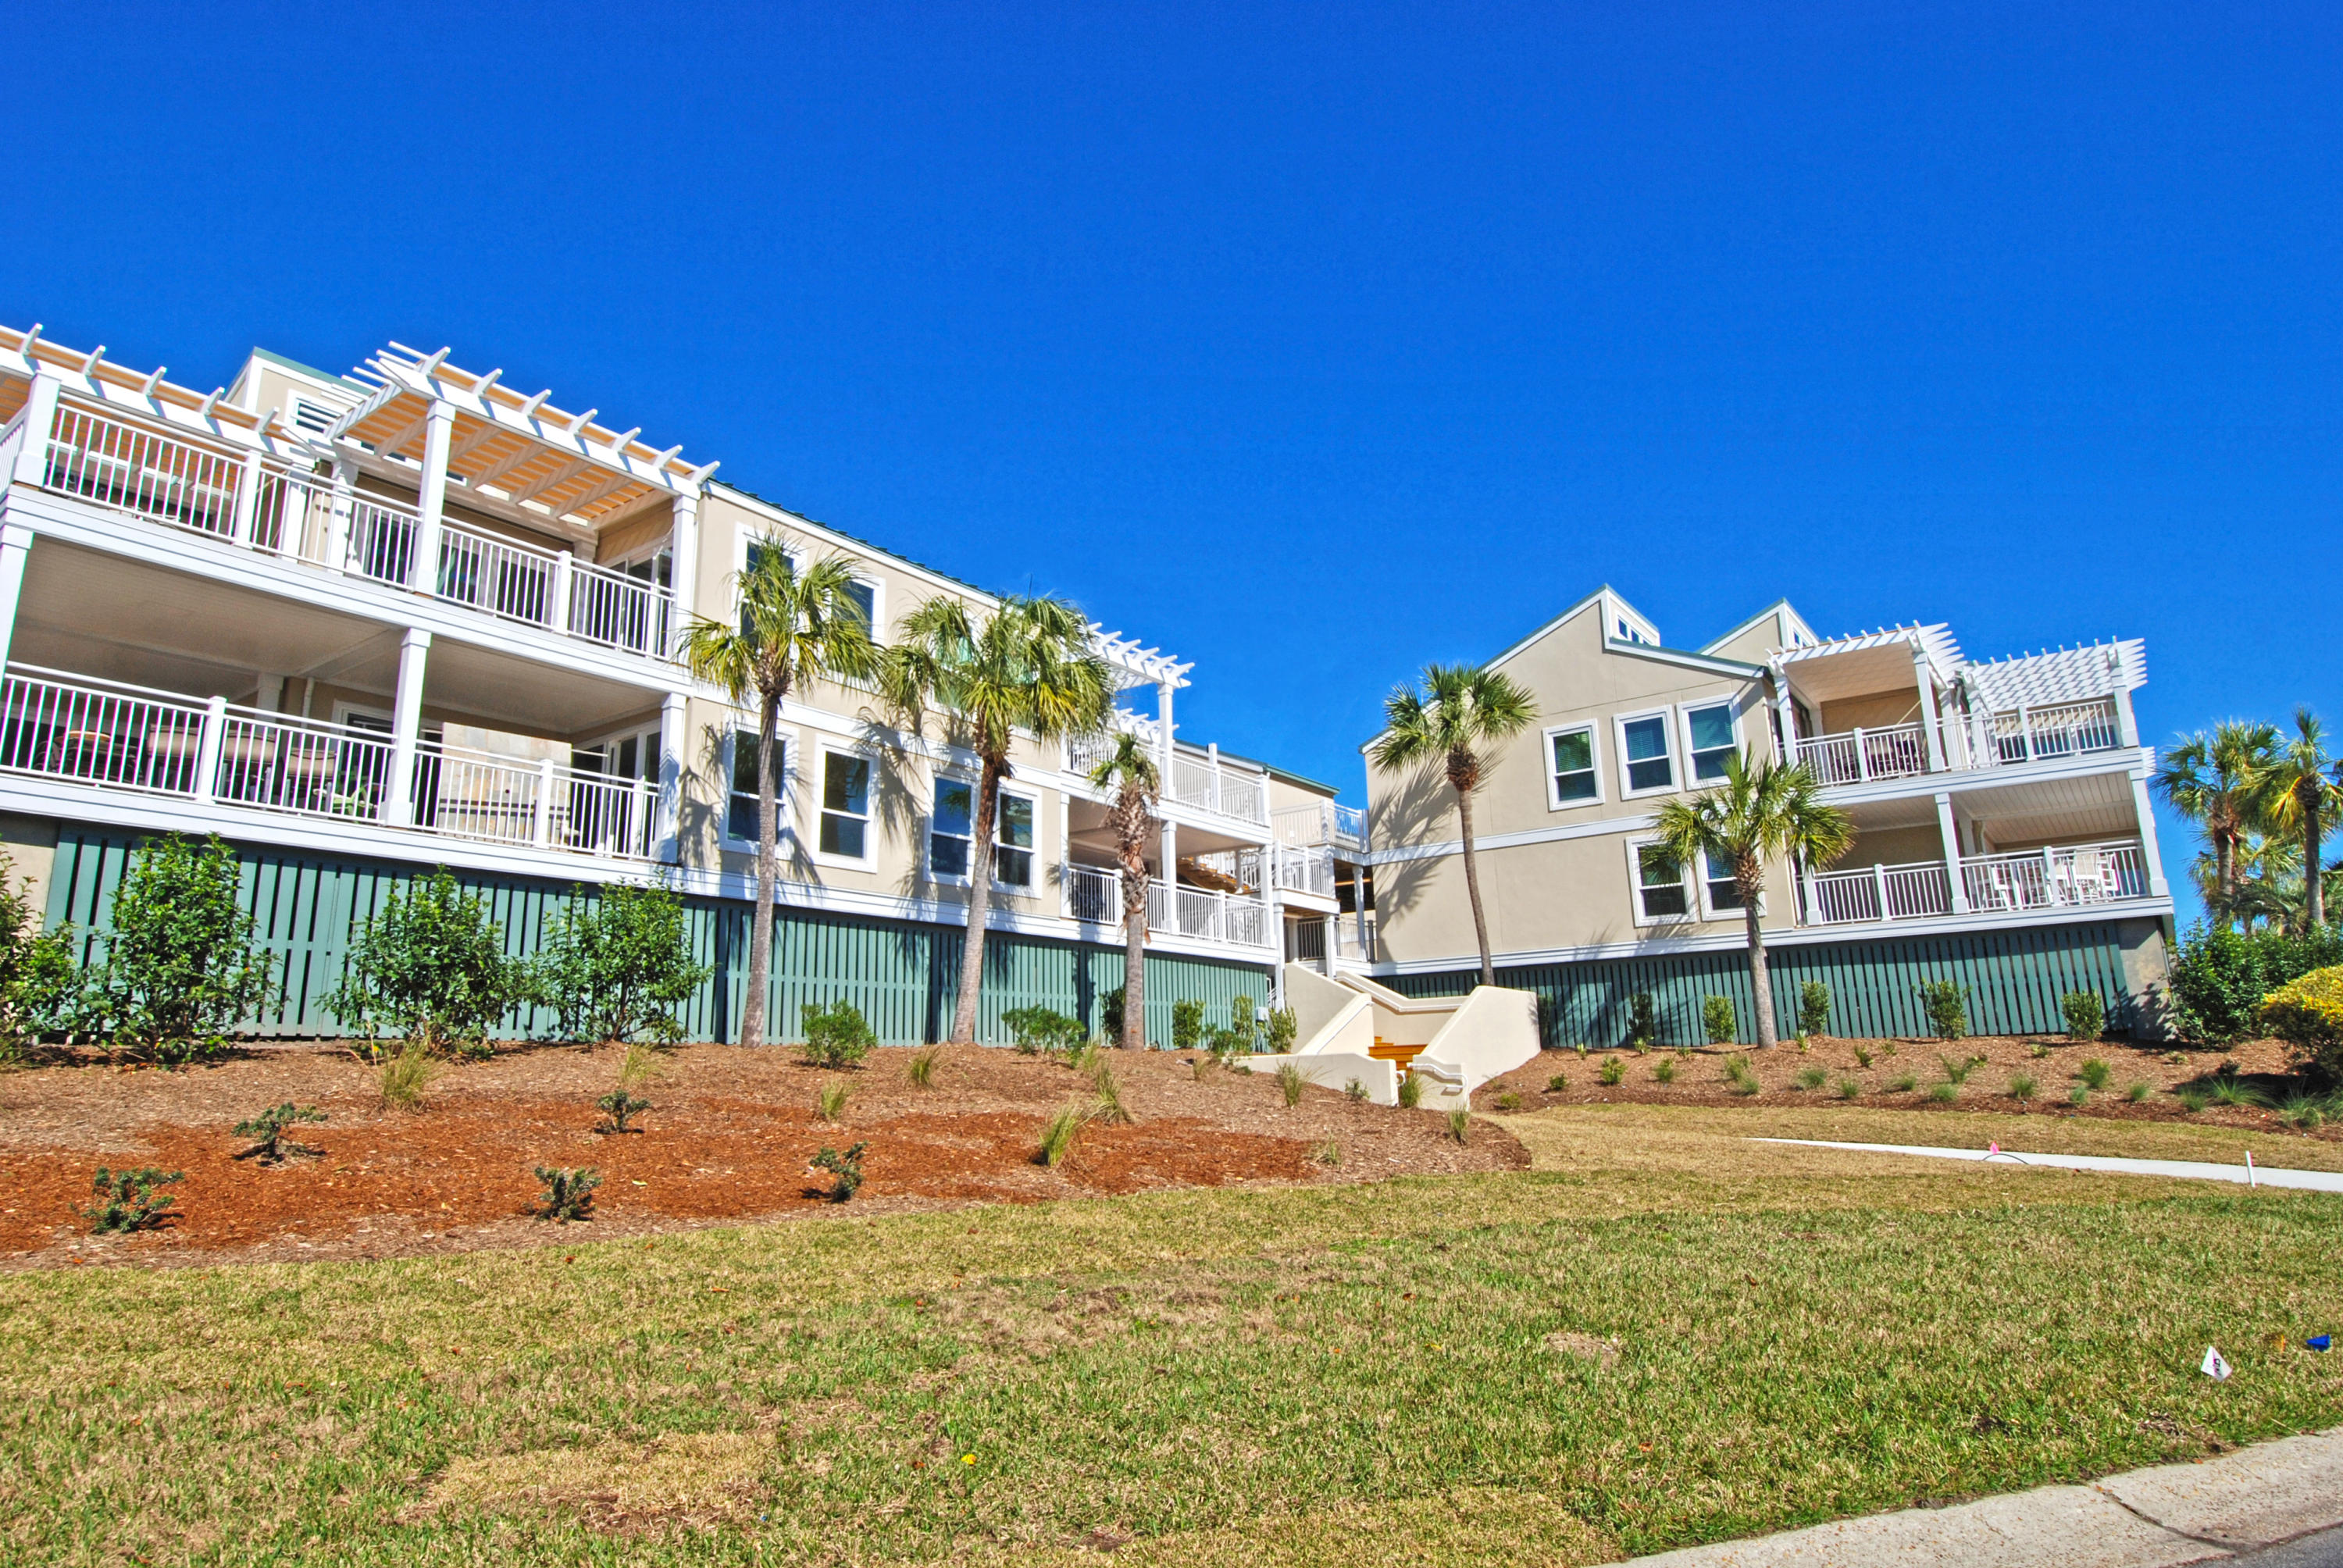 Atrium Villas Homes For Sale - 2943 Atrium Villa, Seabrook Island, SC - 7